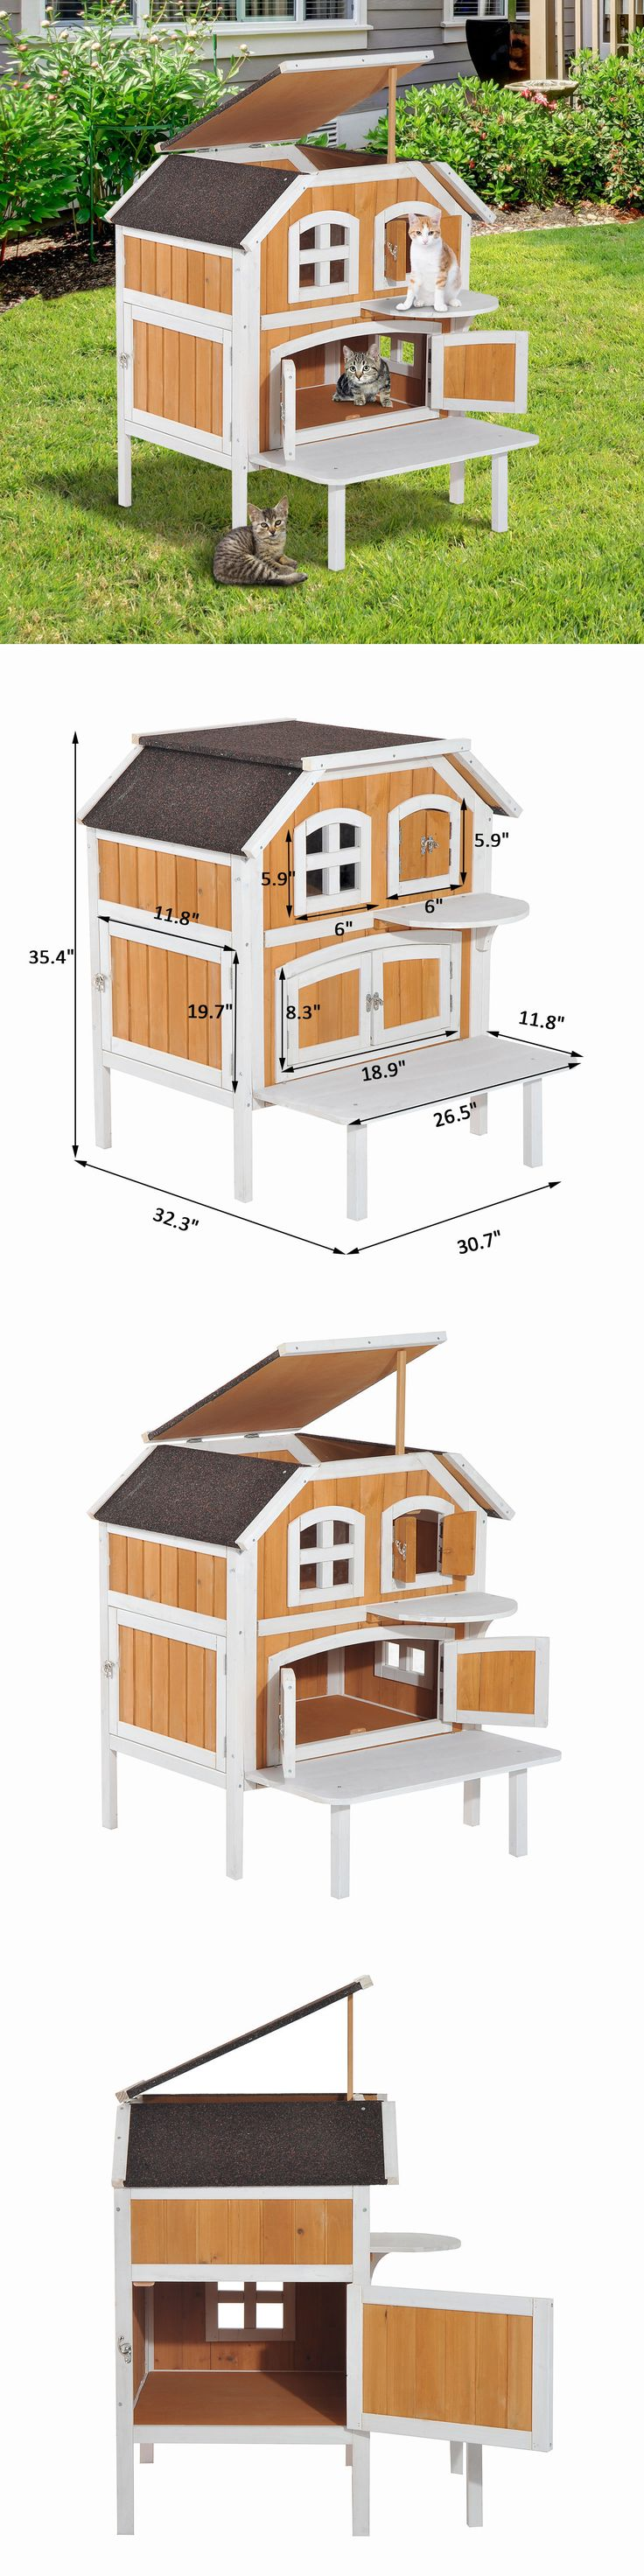 Furniture and Scratchers 20740: 2-Story Wooden Raised Elevated Cat Cottage Pet House Indoor Outdoor Kennel -> BUY IT NOW ONLY: $109.99 on eBay!